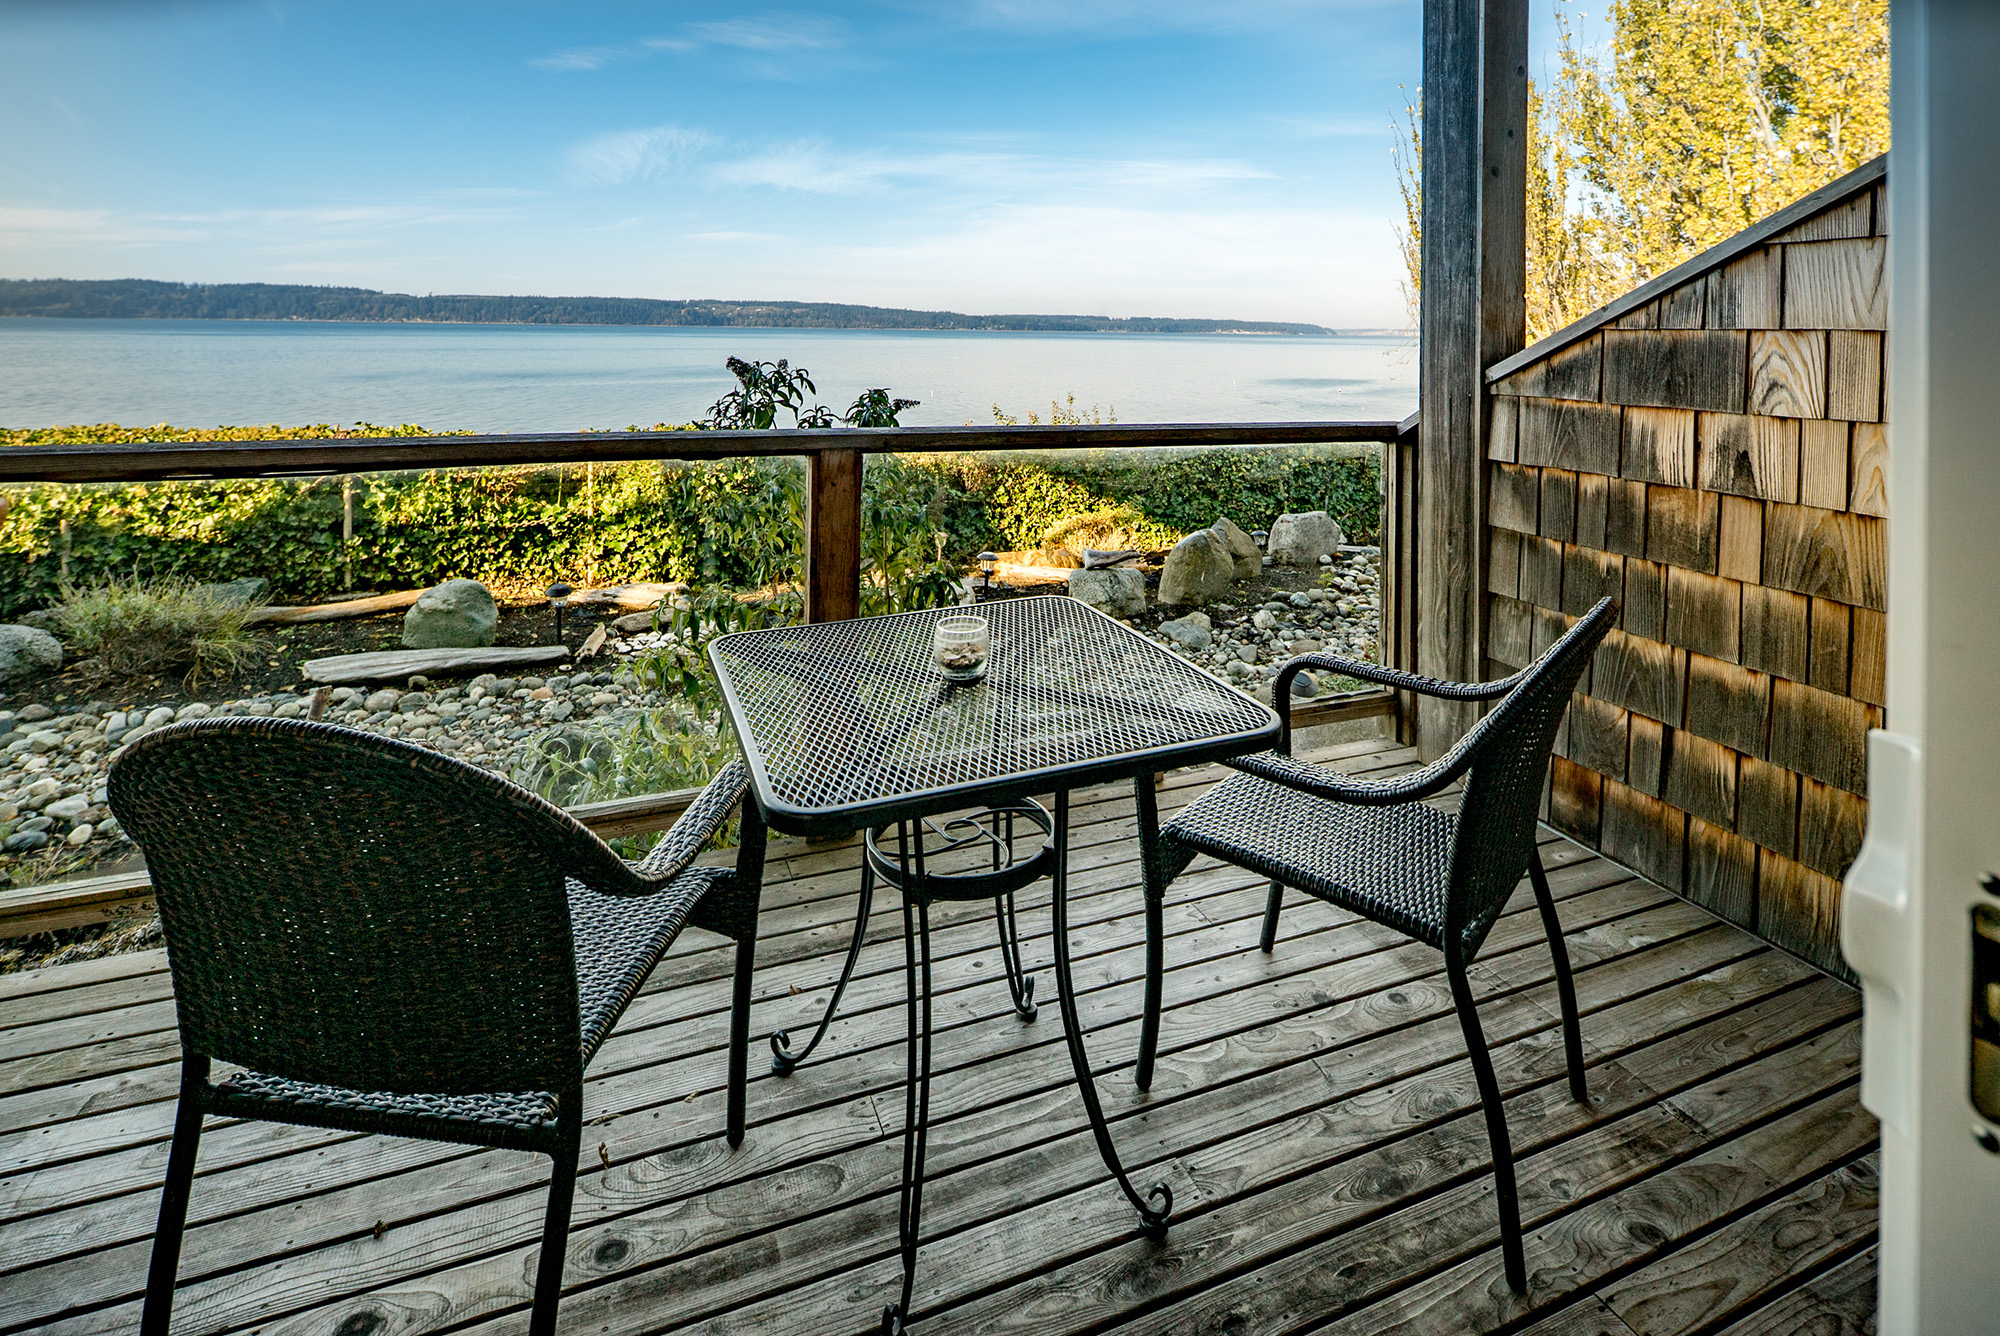 By the Numbers - The average and median waterfront selling prices among these RSIR-listed homes were $825,000 and $779,500, respectively, while the average and median waterfront selling prices among all 84 waterfront sales on Camano Island were respectively $702,000 and $621,500.